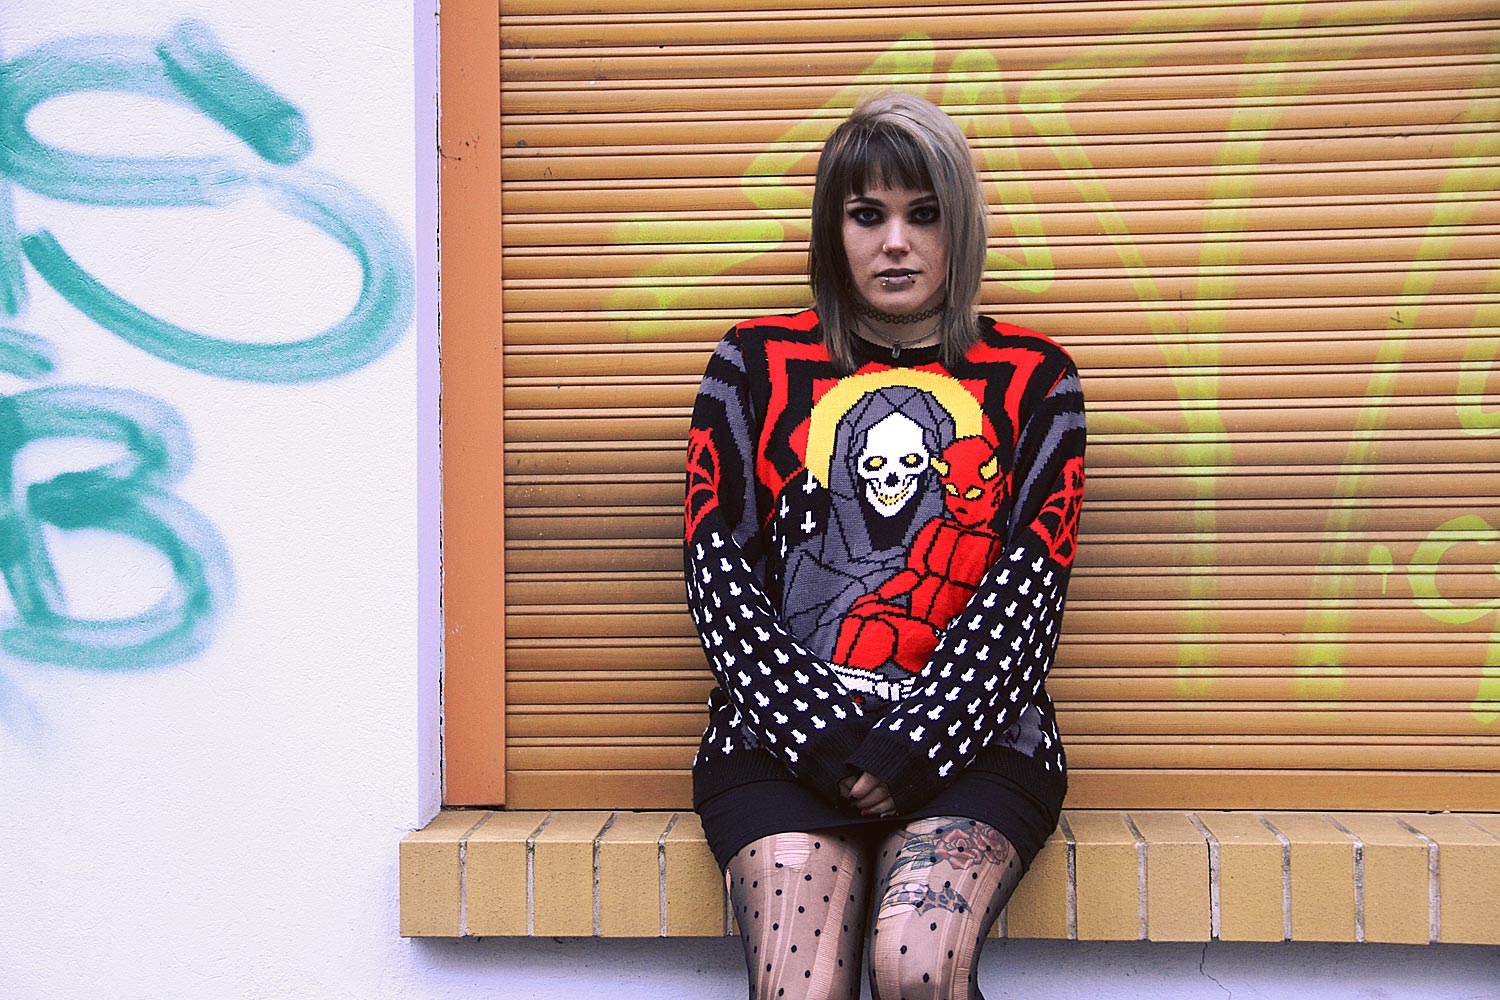 berlin, berlin fashion, berlin streetstyle, berlin fashion blogger, blogger, fashion blogger, punk, grunge, punk fashion, grunge fashion, alternative, alternative fashion, alternative girl, altgirl, snakebites, girls with piercings, scenehair, mode, alternative mode, punk mode, grunge mode, split hair, splithair, girls with tattoos, tattoomädchen, tattoomodel, killstar, saviour, hexmas, strick, knit, punkte, strumpfhose, ripped, used, usedlook, zerrissene strumpfhose, primark, unif, trench boot, plateau, plateau boots, boots, combat boots, crystal, kristall, kreuz, cross, tattoos, pentagram, satan, skull, occult, tattooband